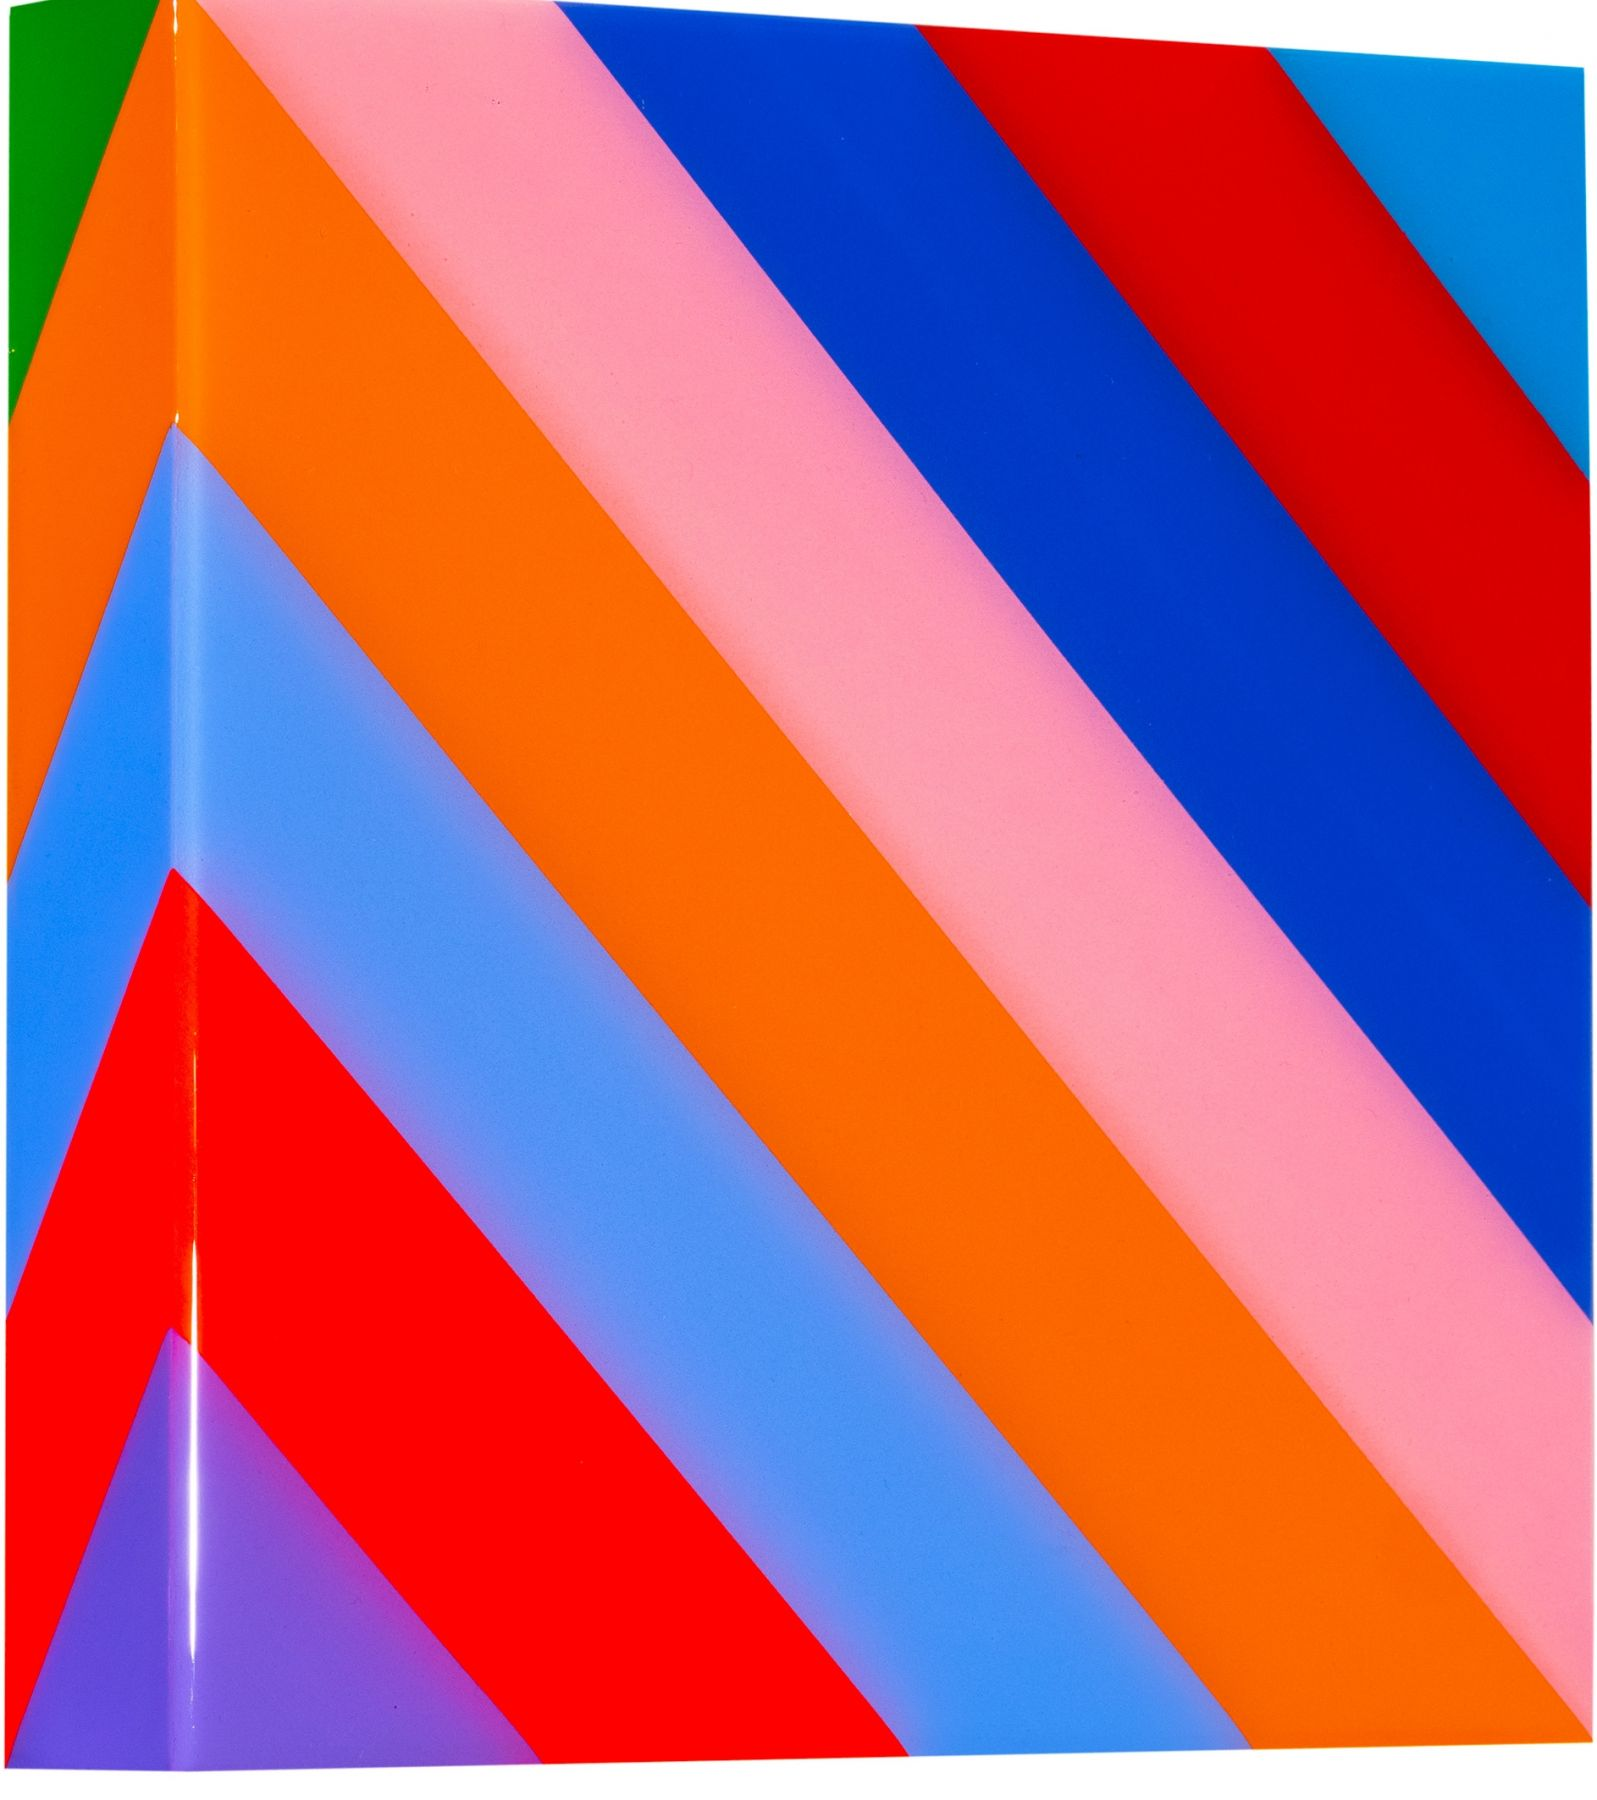 Heidi Spector, My Clarity I, 2019, Liquitex with resin on Birch panel, 12 x 12 x 2 inches, Signed, titled and dated on the verso, Square panel with bright and colorful vertical lines set in a glass-like surface, Heidi Spector creates geometric minimalist art inspired by musical rhythms that are composed of repetitive shapes in candy-like colors that vibrate.